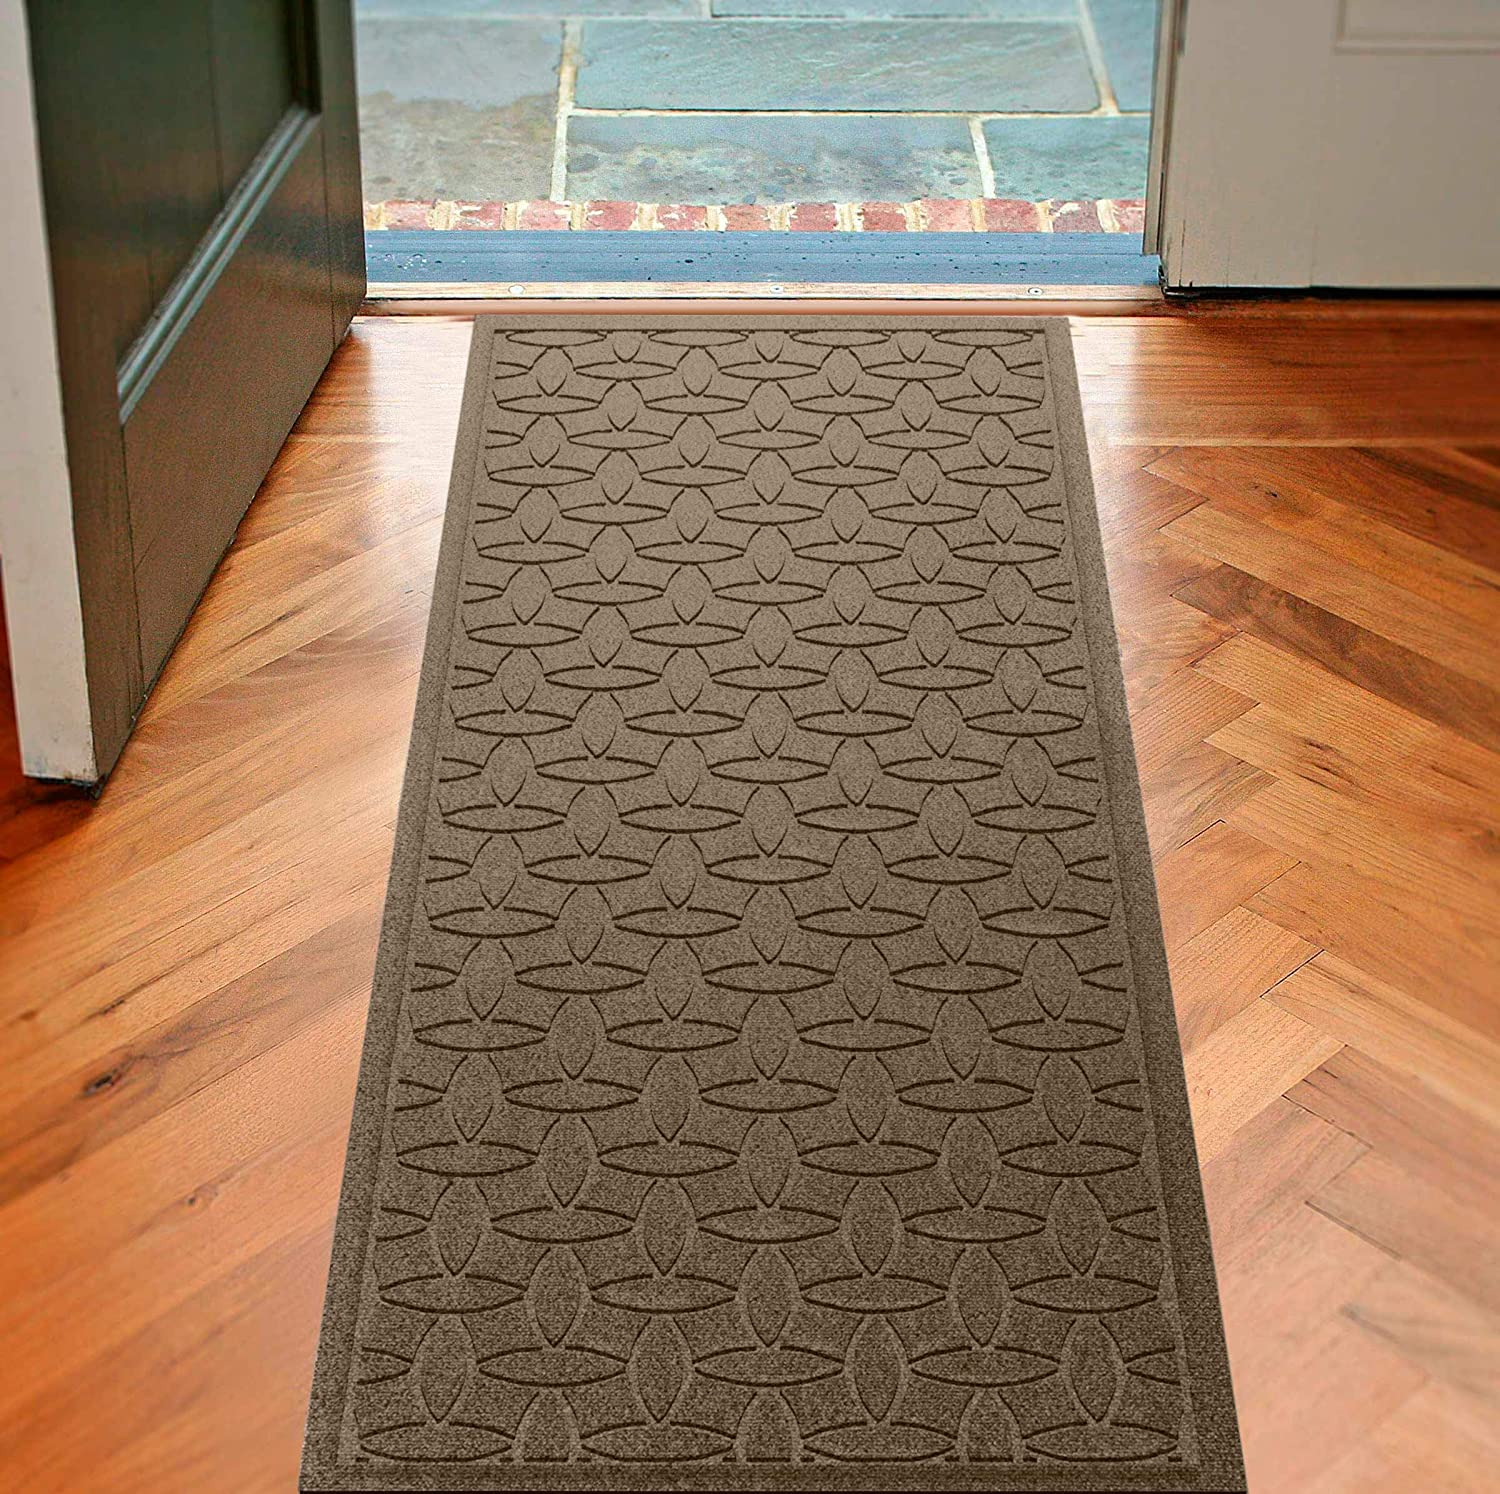 Bungalow Flooring Waterhog Runner Rug OFFicial 22 Max 86% OFF in U inches x 60 Made